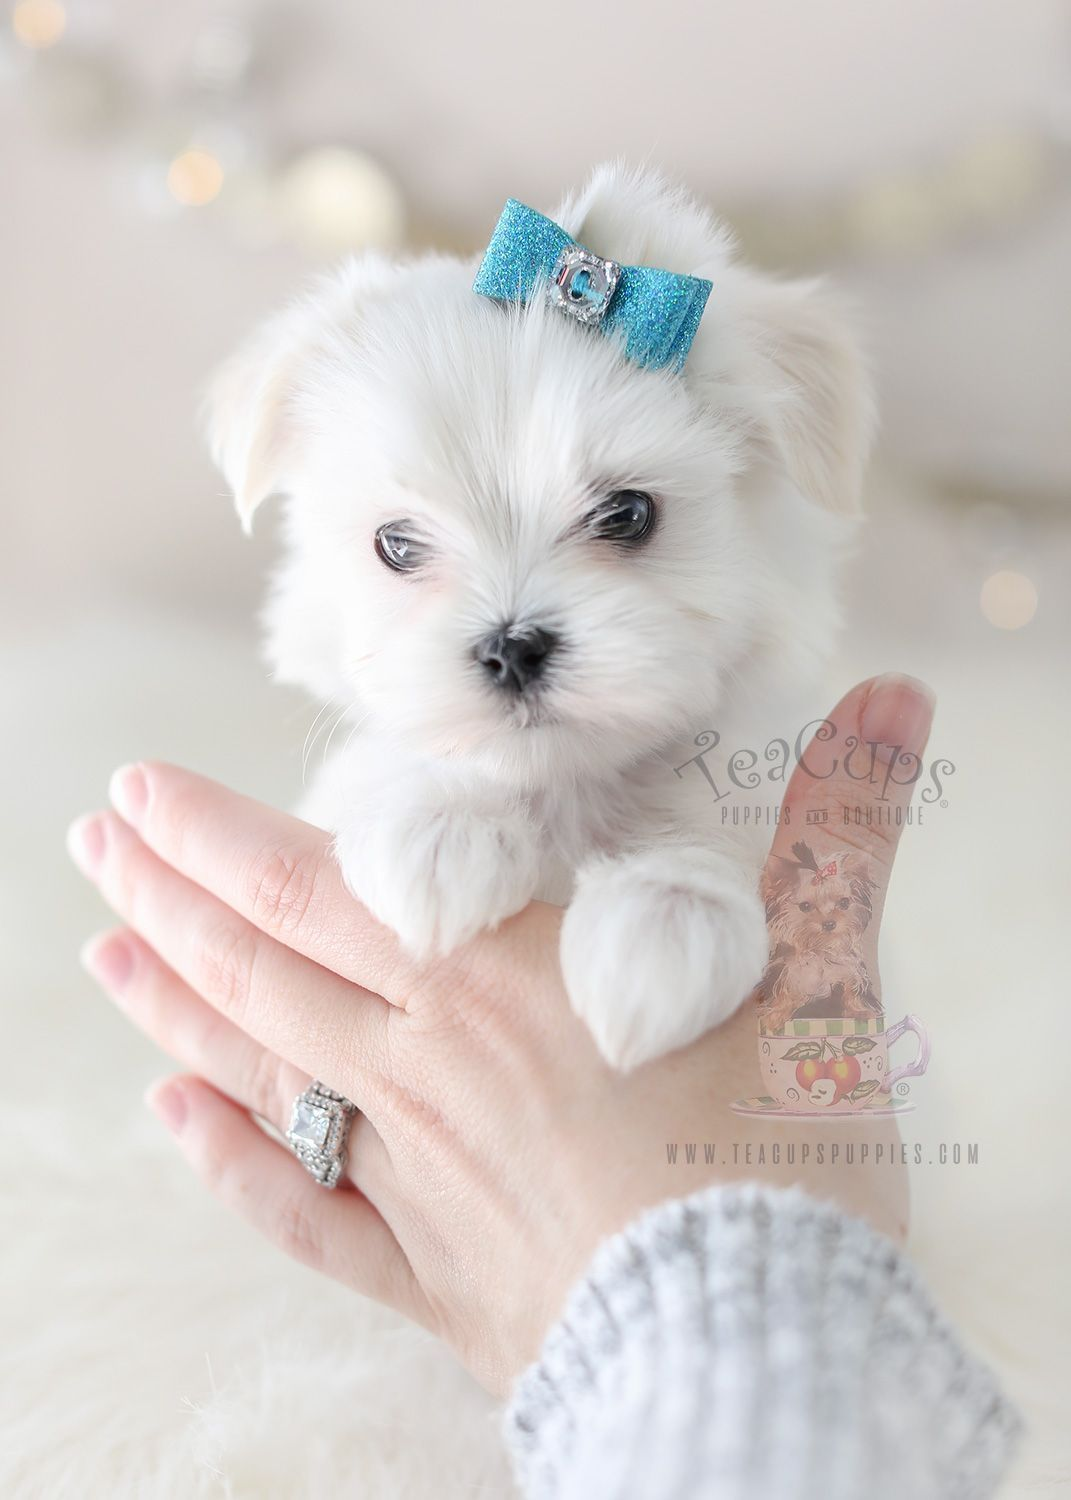 Maltese Puppy For Sale 369 Teacup Puppies Maltese Maltese Puppy Teacup Puppies Teacup Puppies For Sale